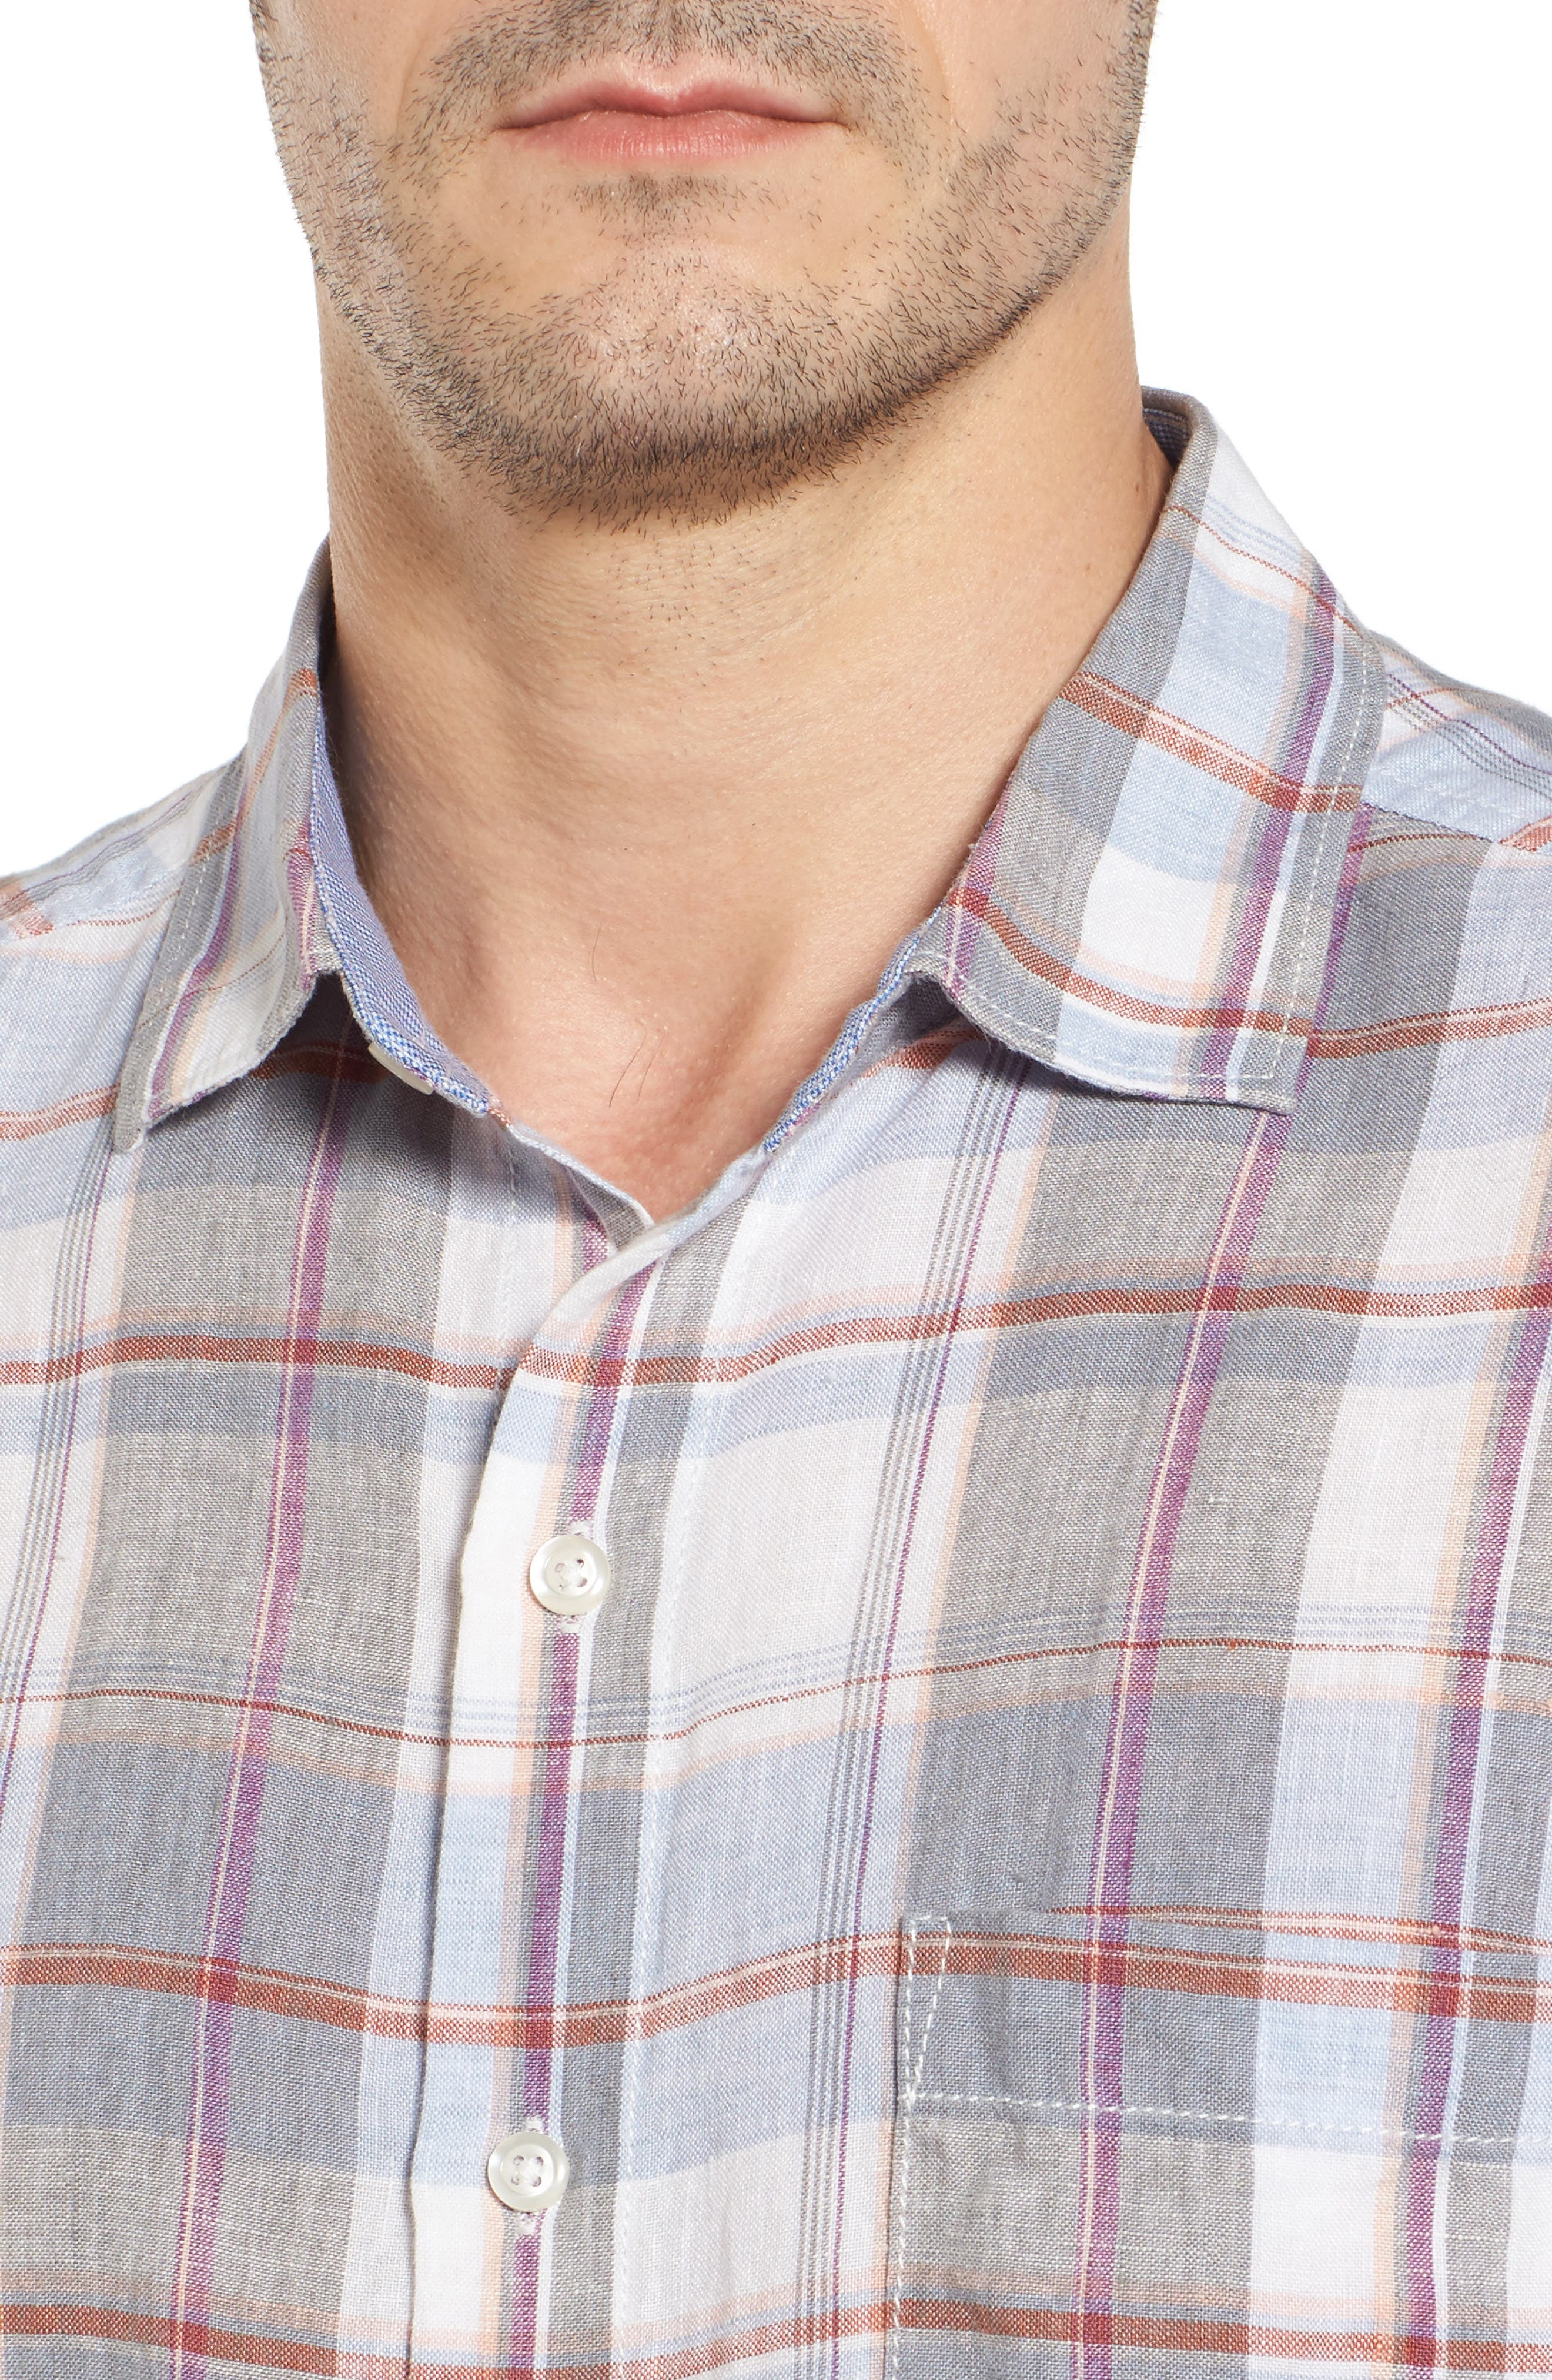 TOMMY BAHAMA,                             Lauderdale Regular Fit Sport Shirt,                             Alternate thumbnail 4, color,                             020